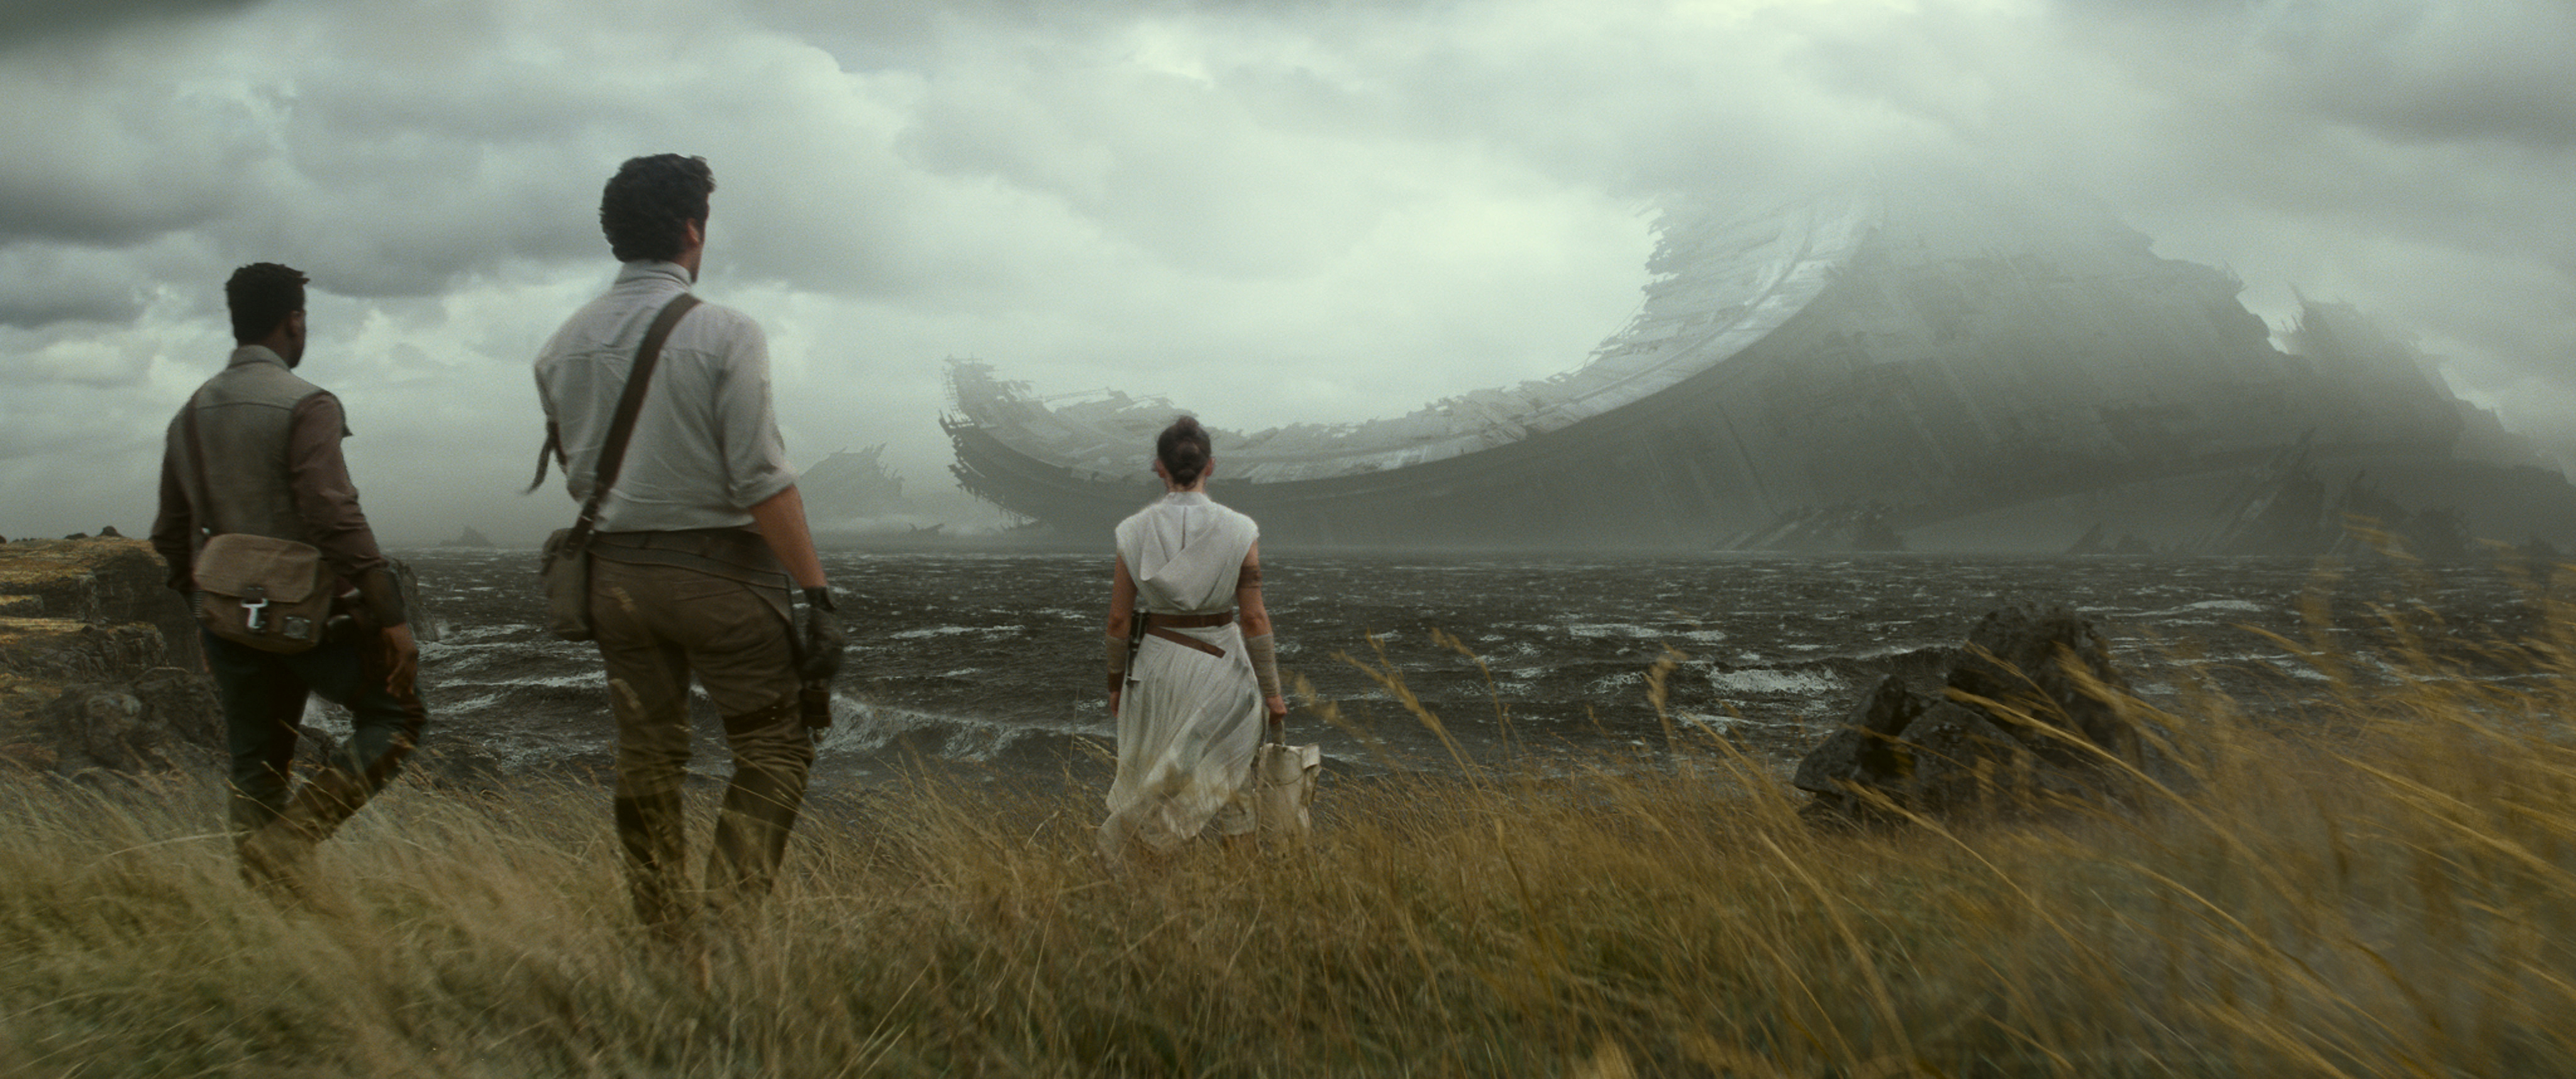 Star Wars: The Rise of Skywalker Poster and Image Revealed